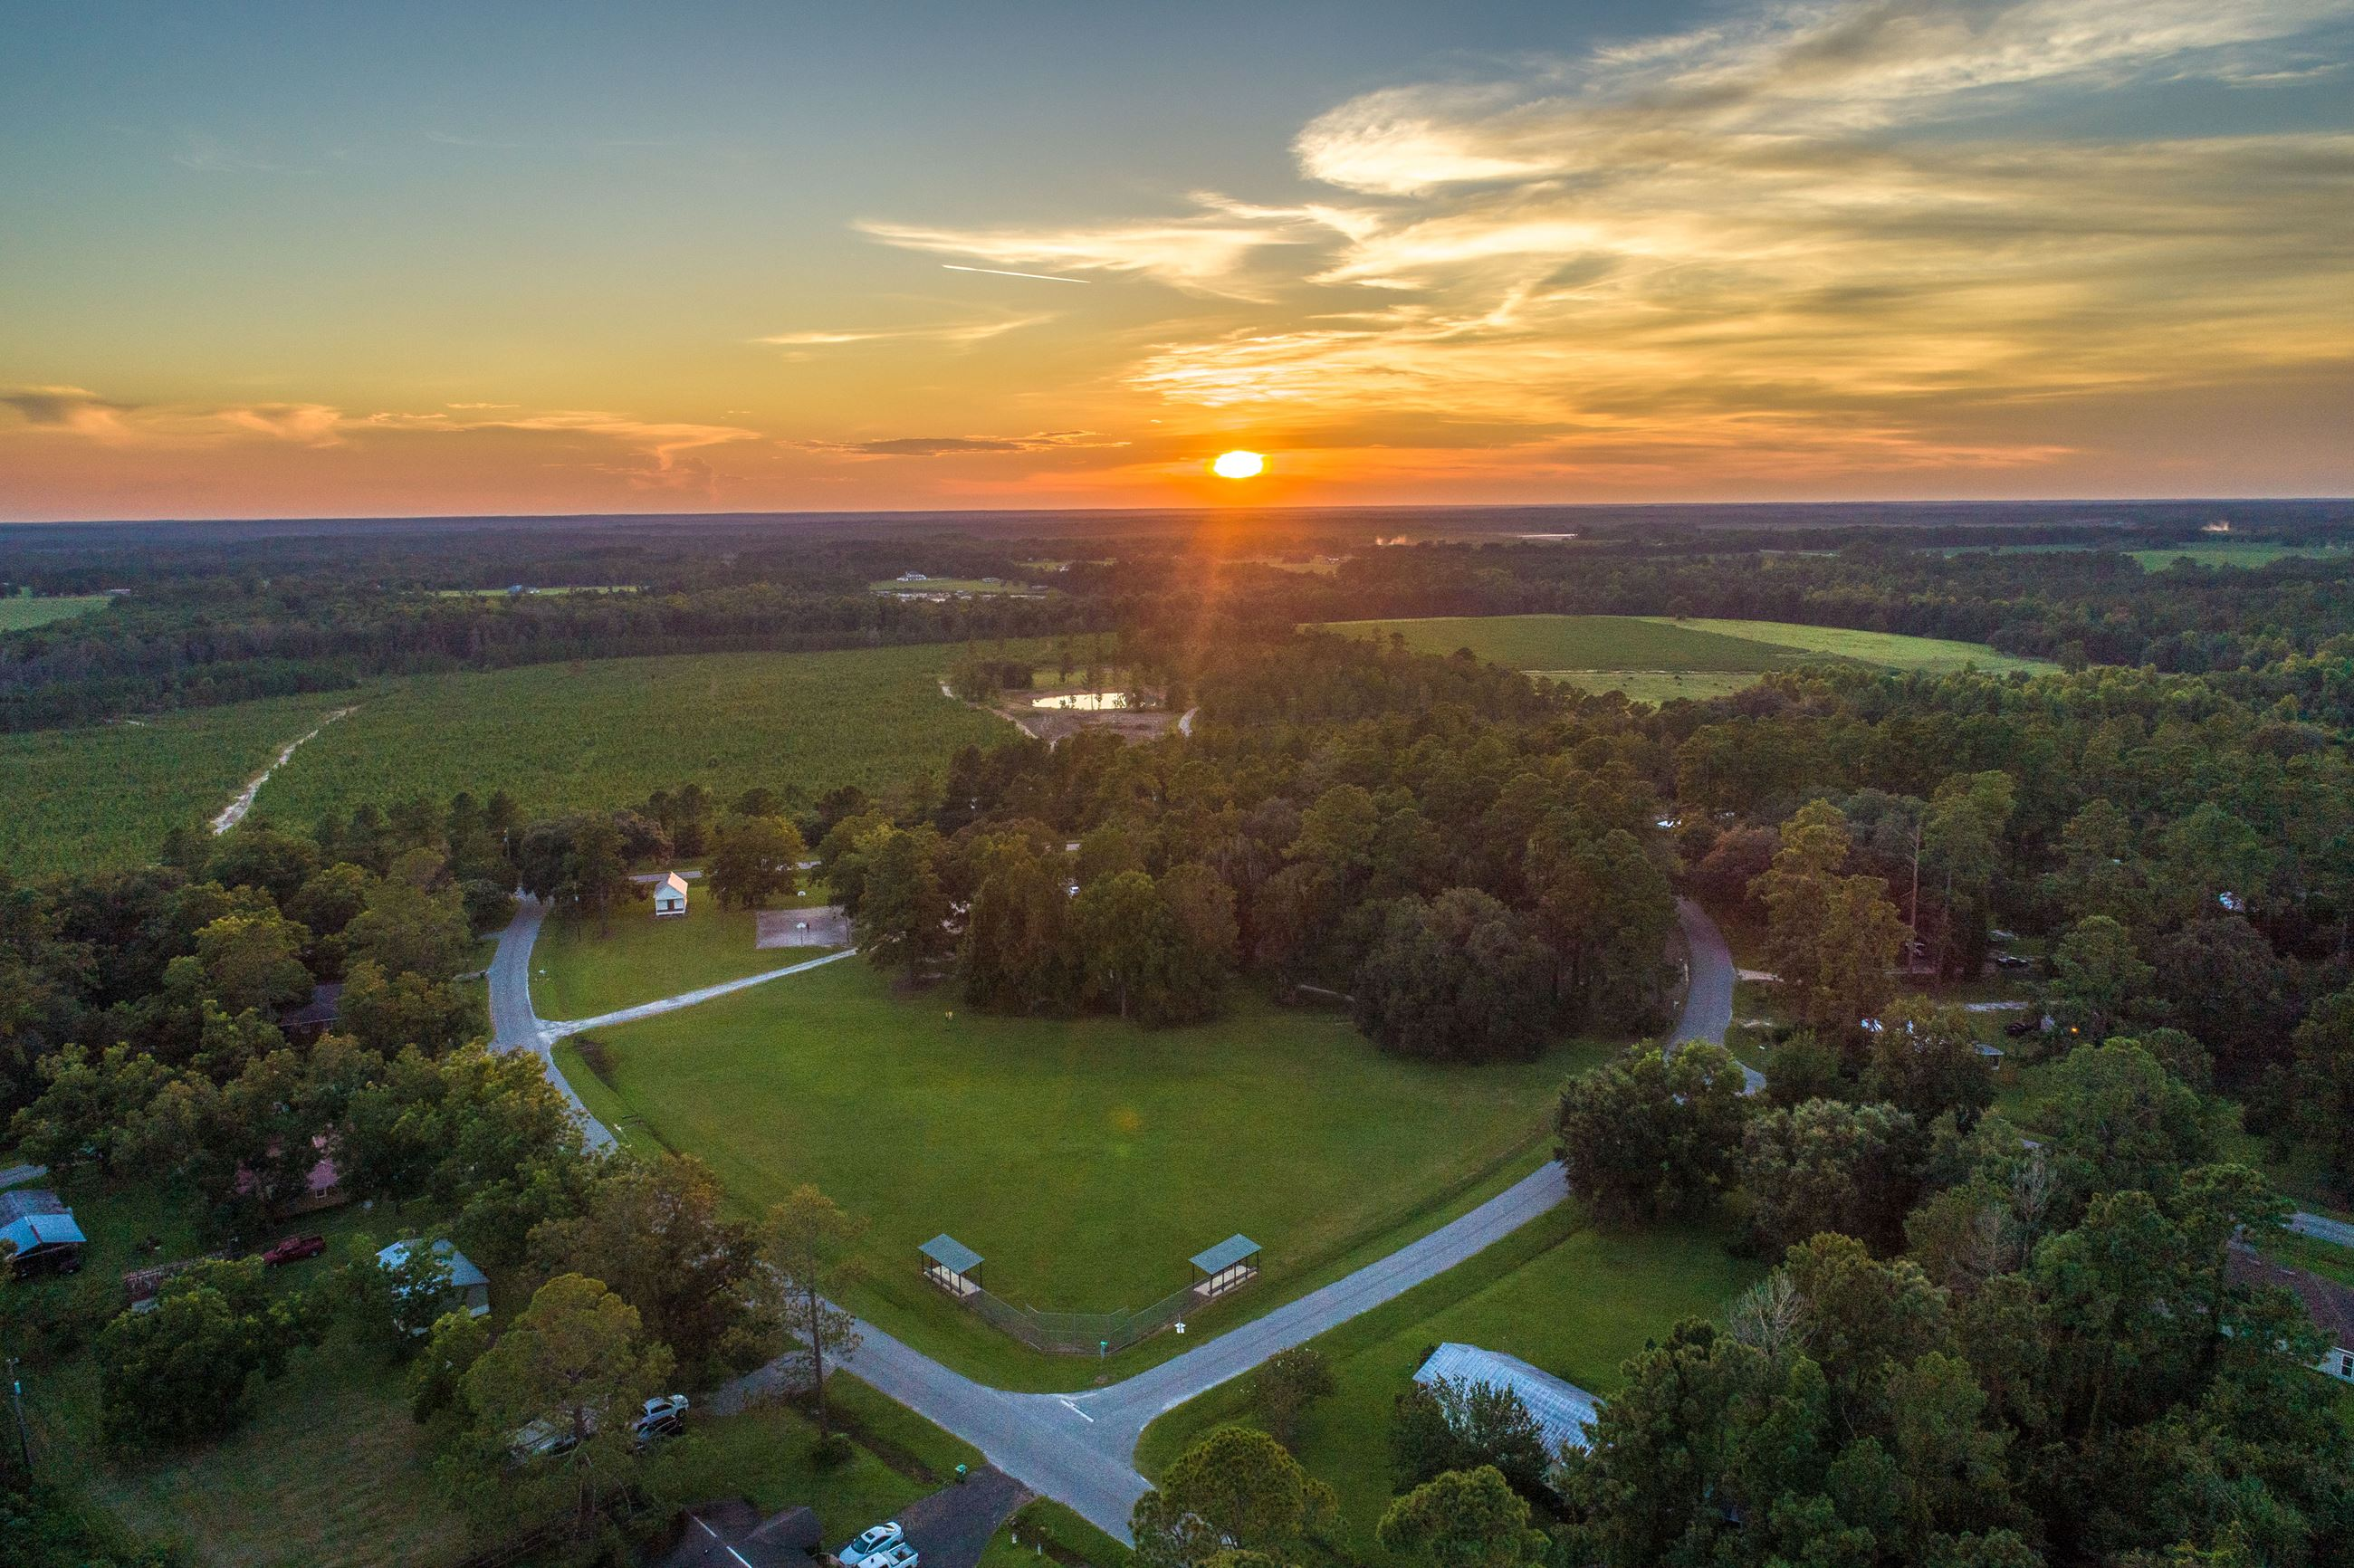 An image of an aerial view of park with trees an open fields and the sunset in the distance.